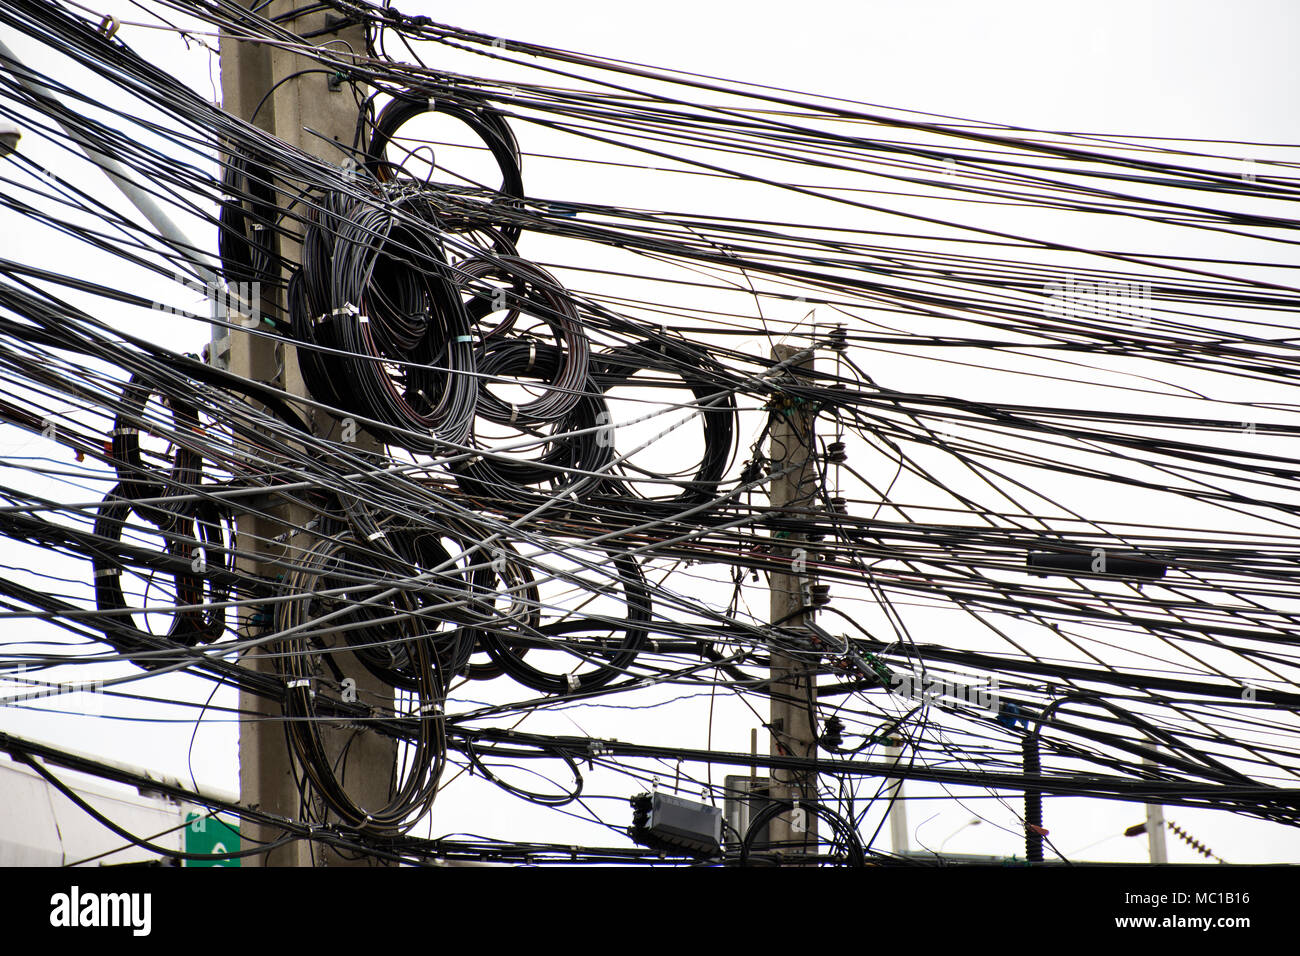 hight resolution of many wires messy with power line cables transformers and phone lines on old electricity pillar or utility pole at beside road in bangkok thailand